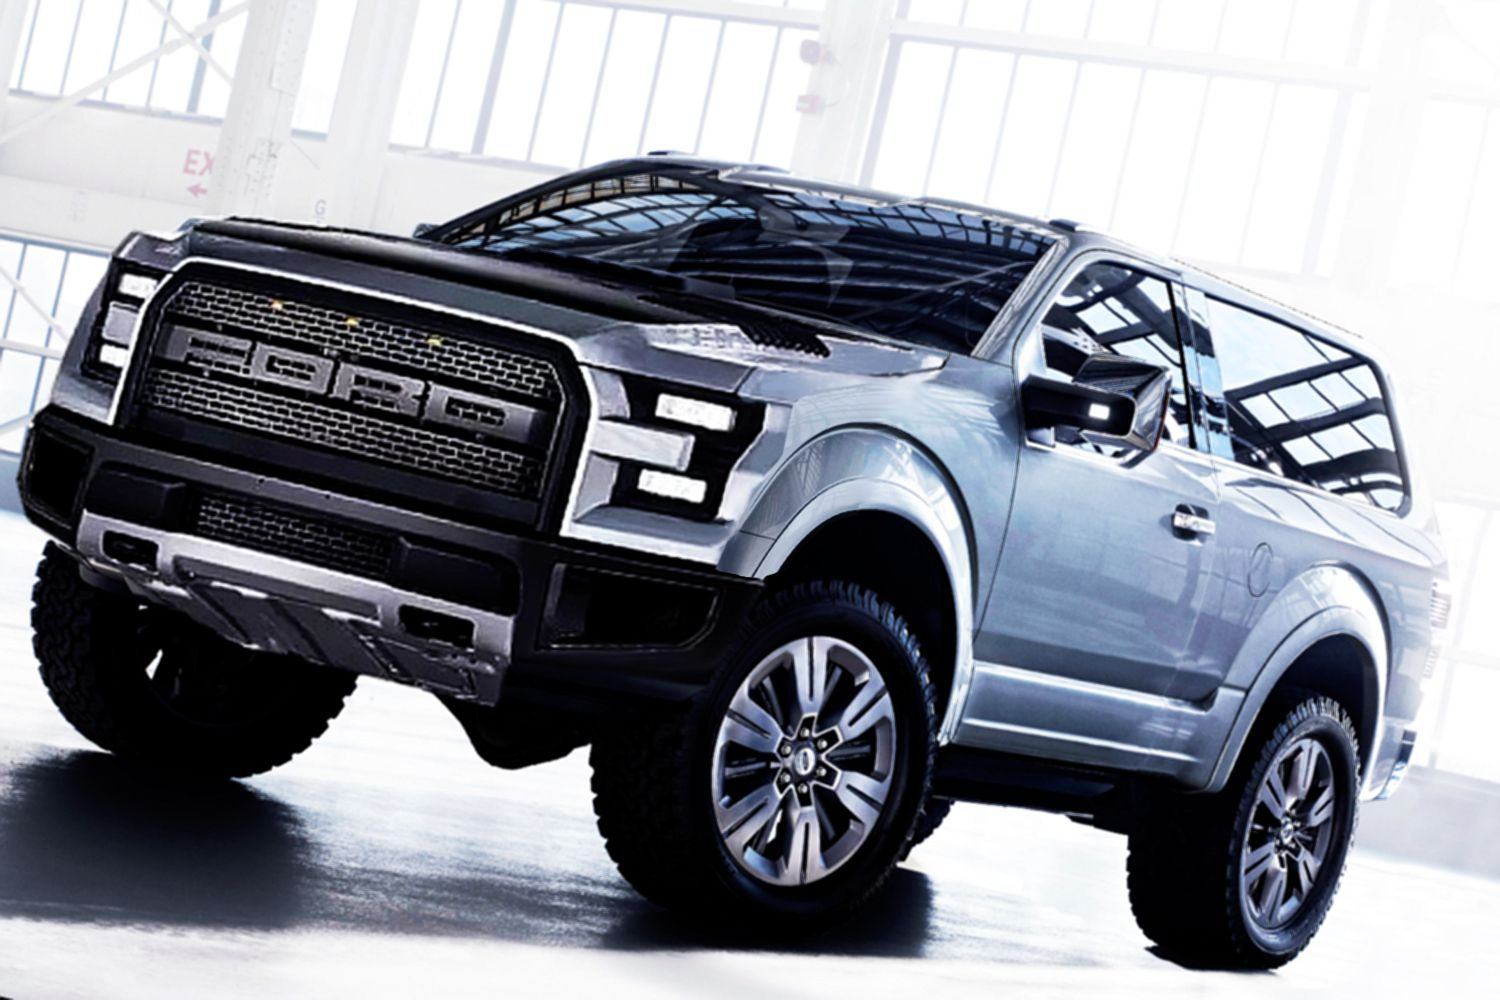 2017 Ford Bronco Svt Raptor Review Interior And Price 2016